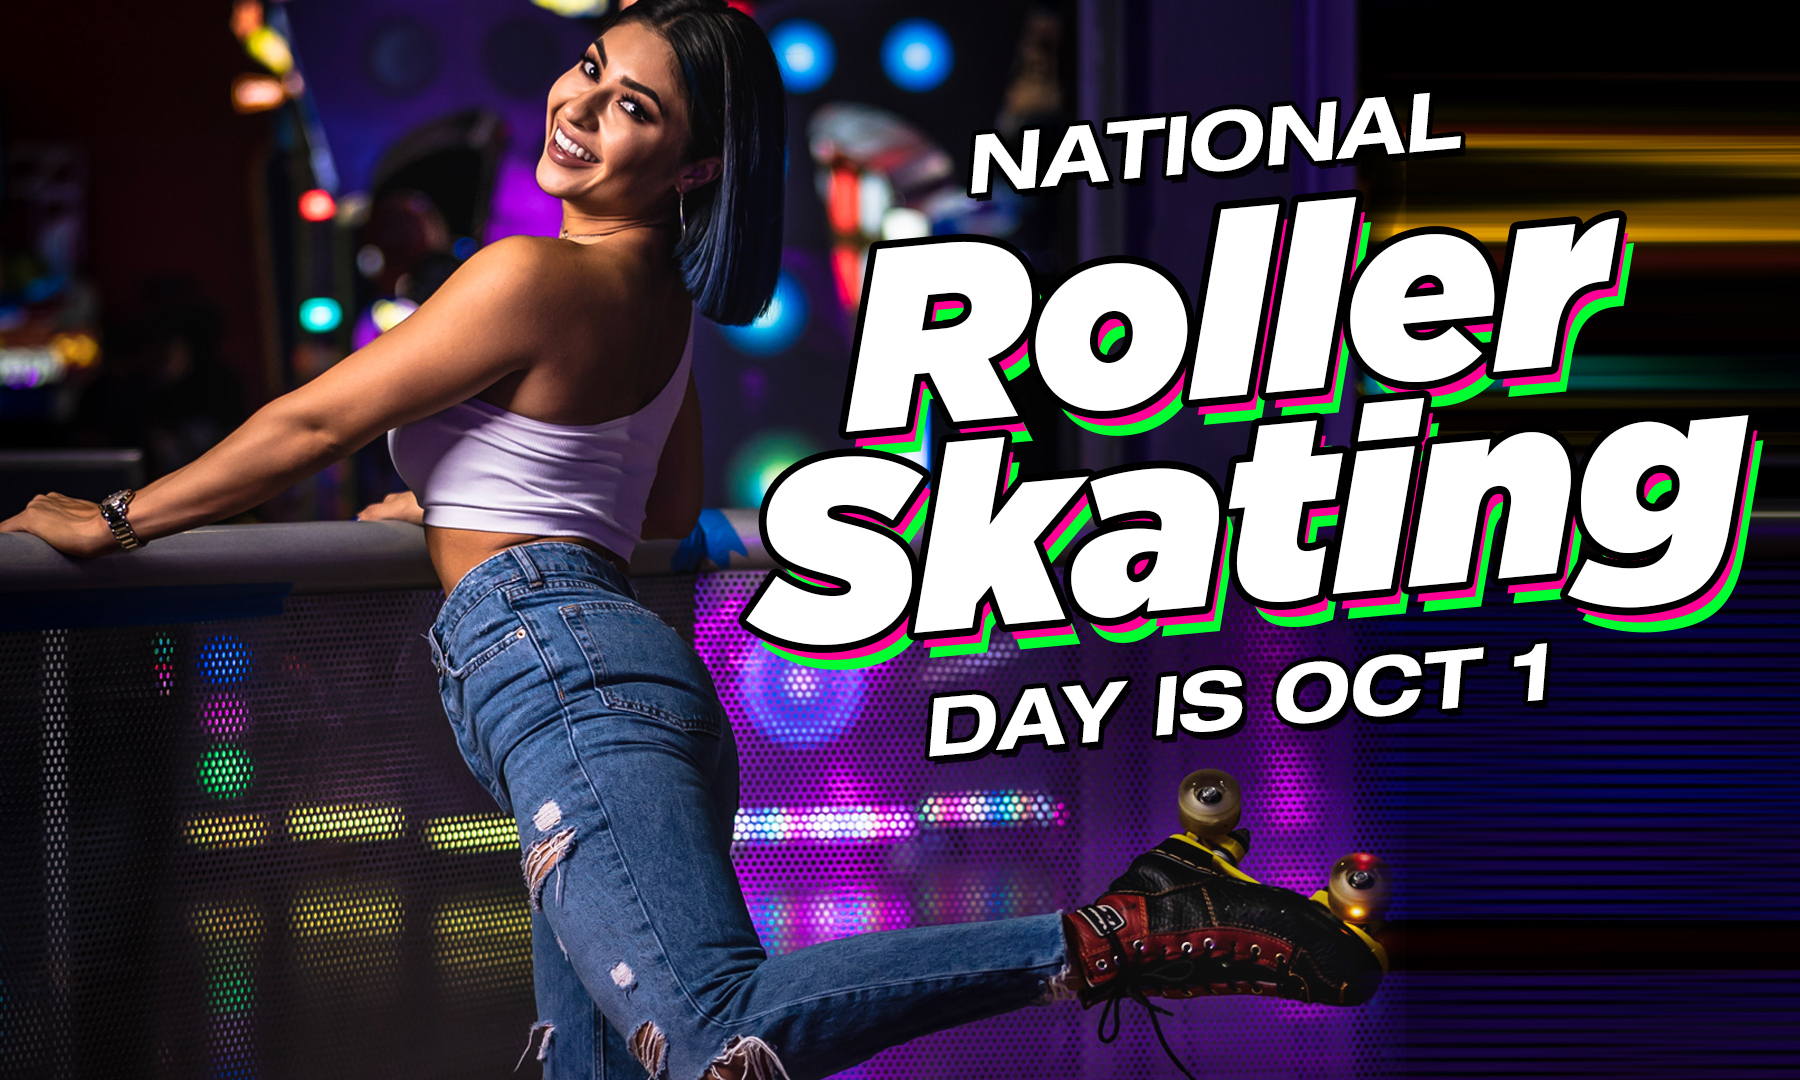 National Roller Skating Day Special